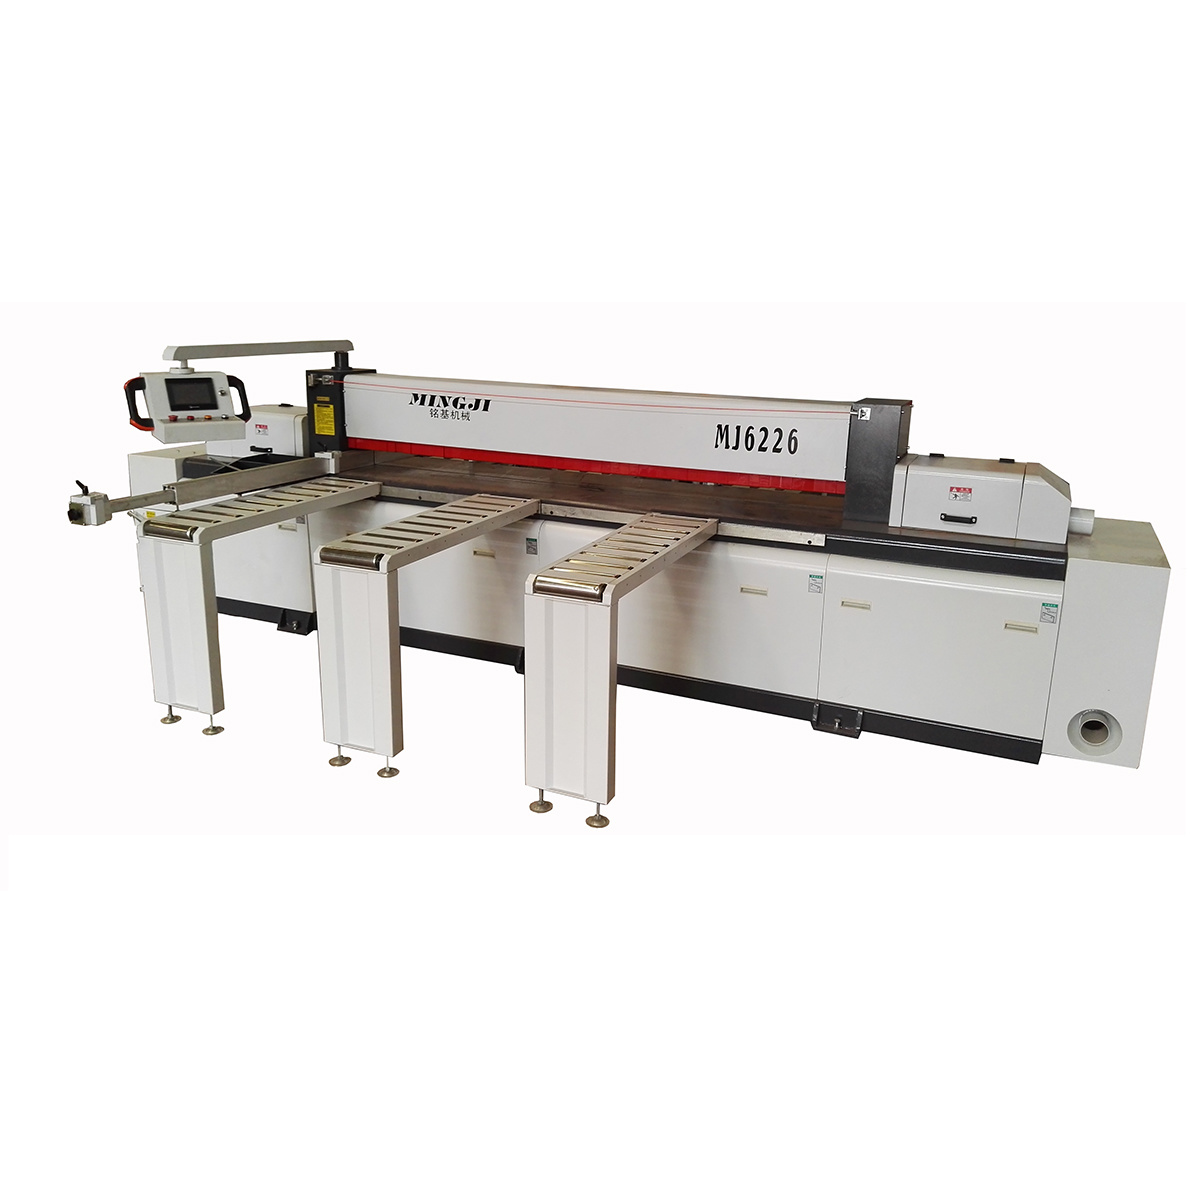 Woodworking Beam Saw for Cabinet Manufacturing